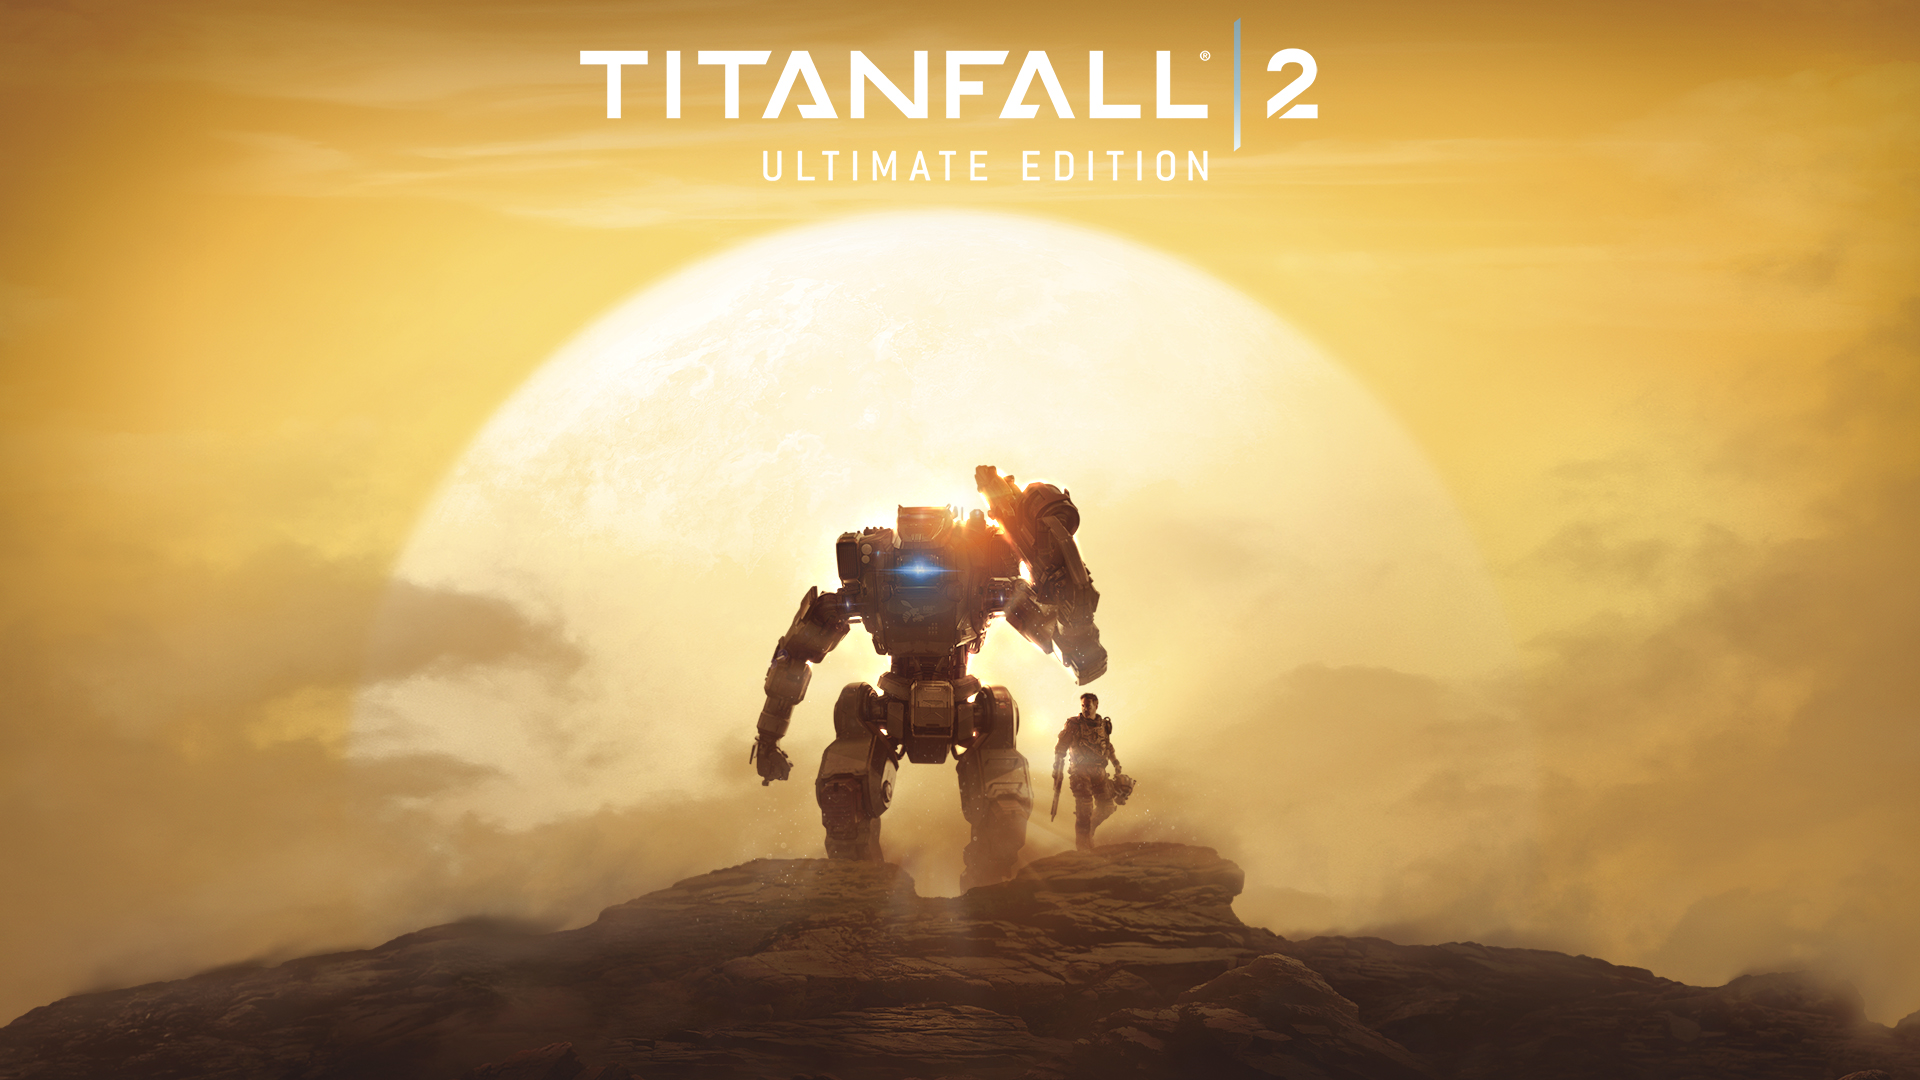 Titanfall 2 Ultimate Edition key art